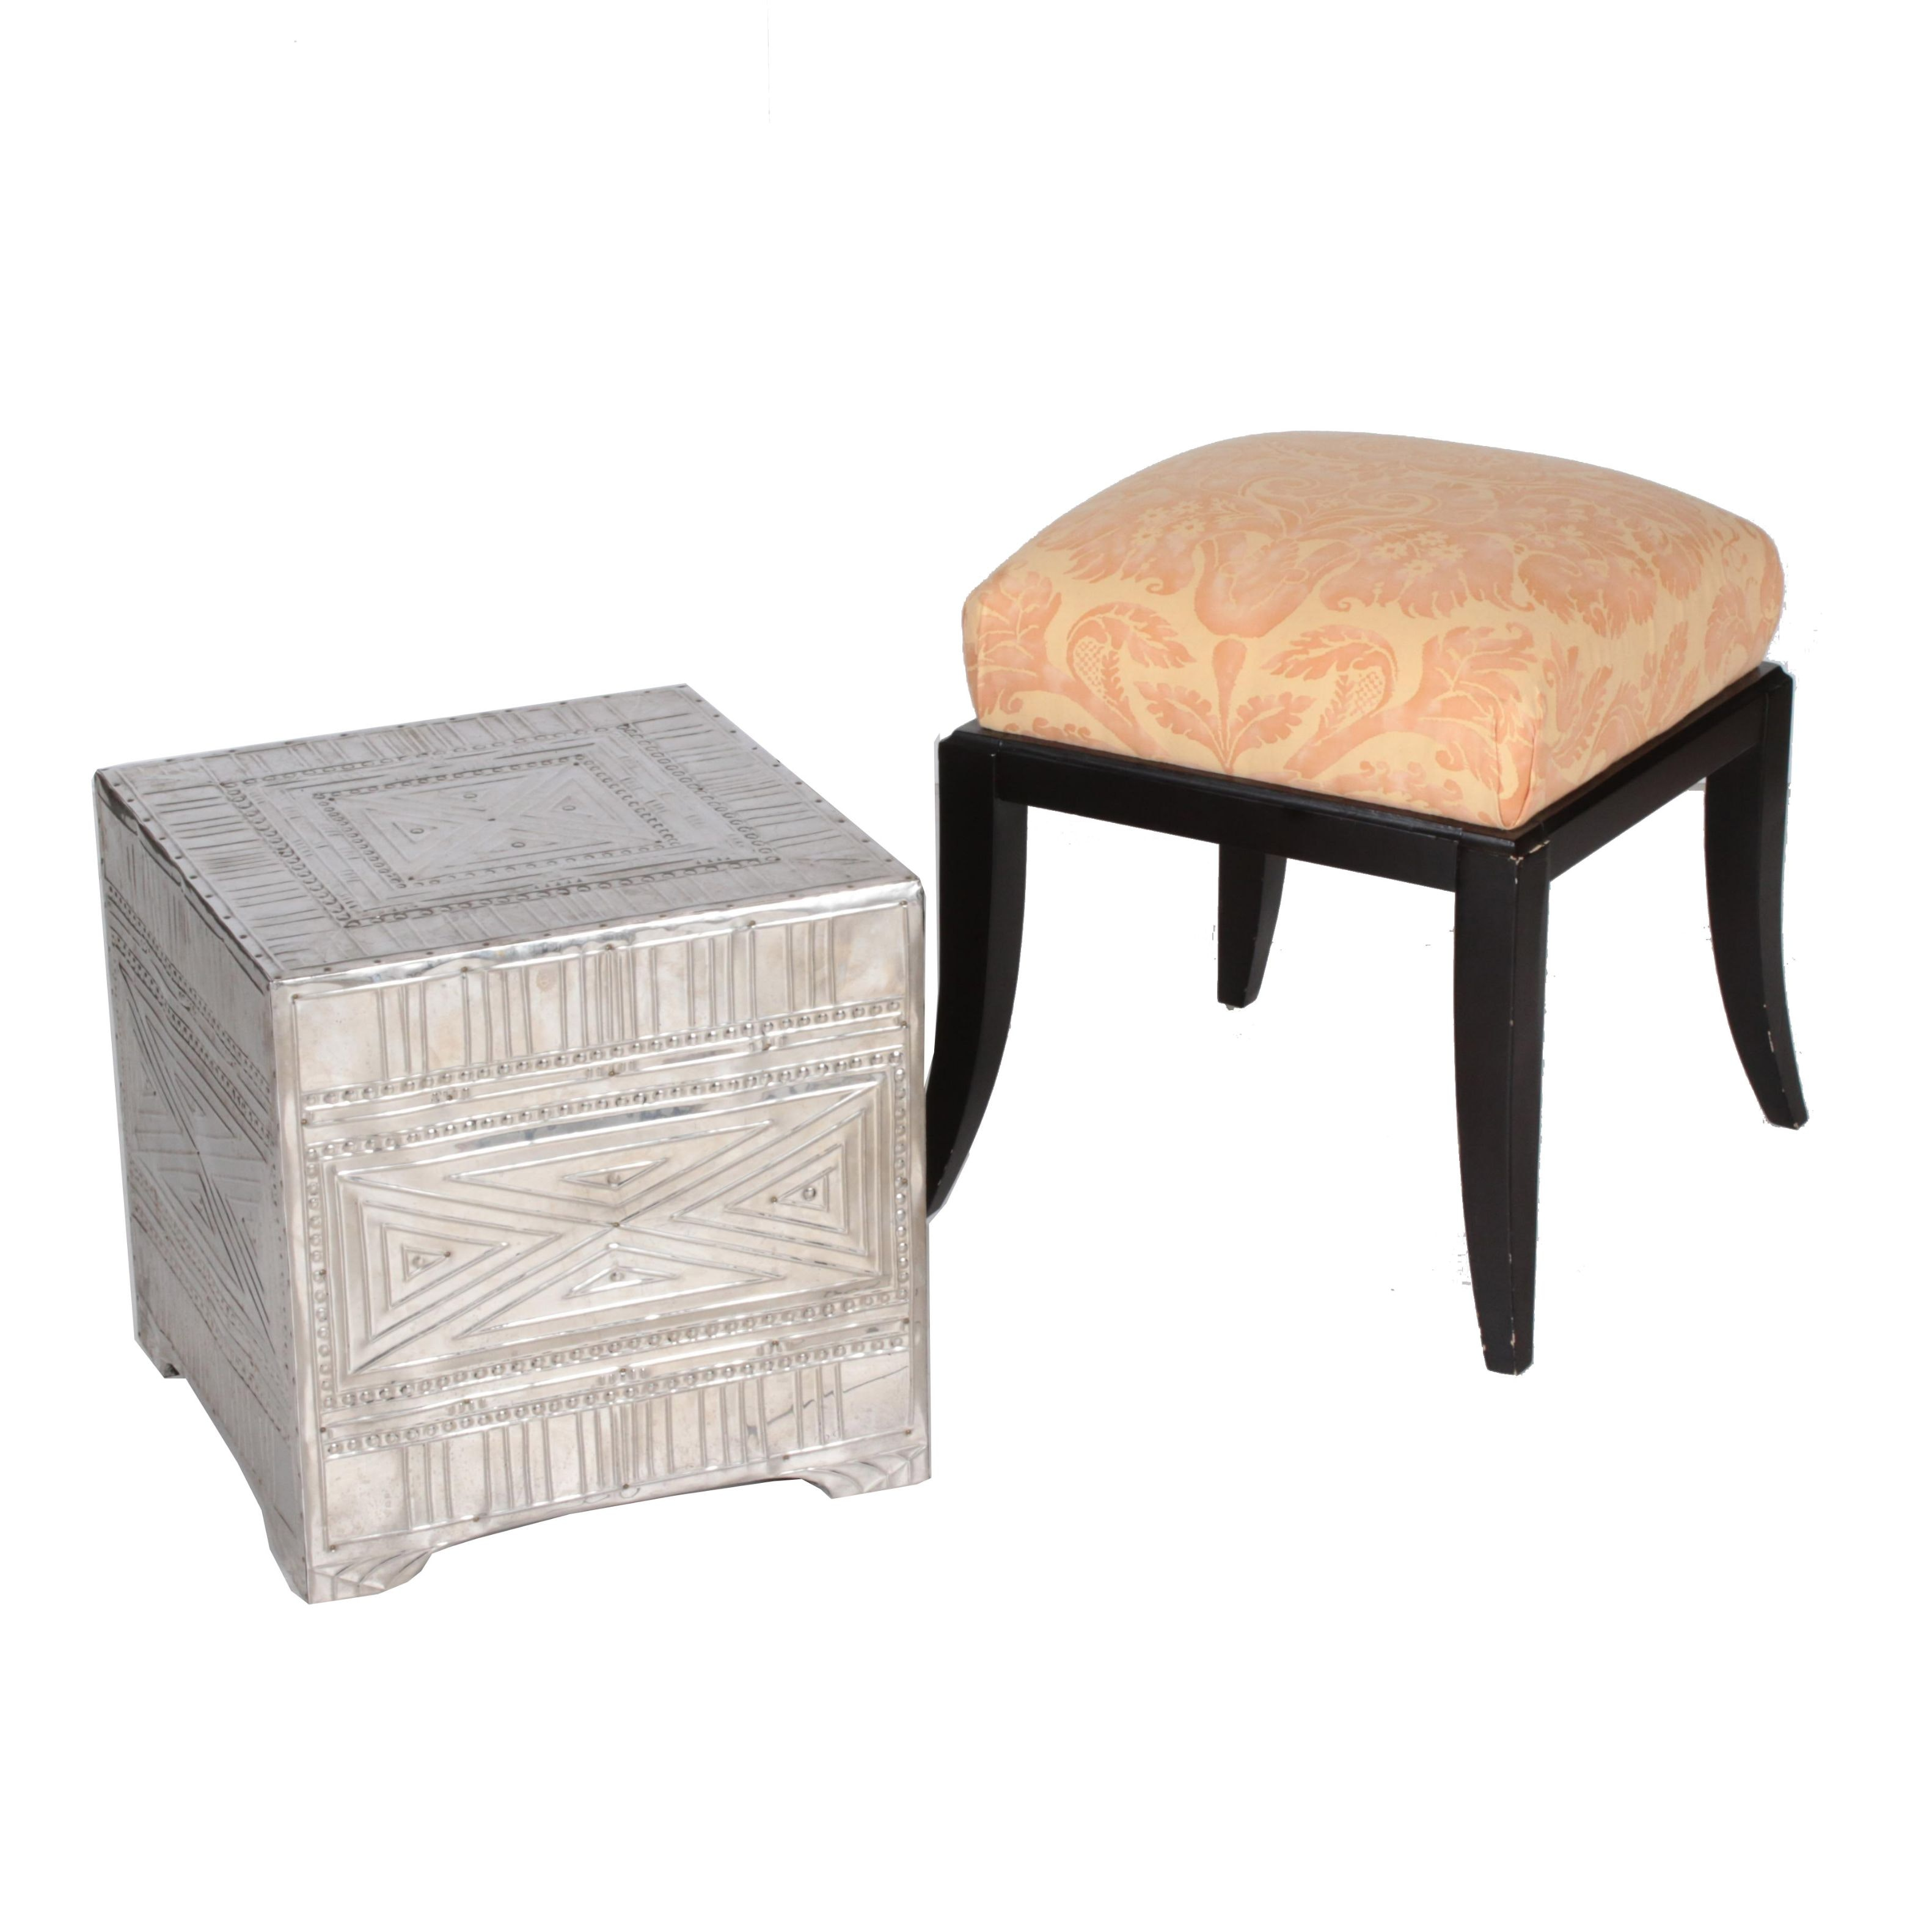 Regency Style Ebonized Footstool with Metal-Lined Cube-Form Side Table